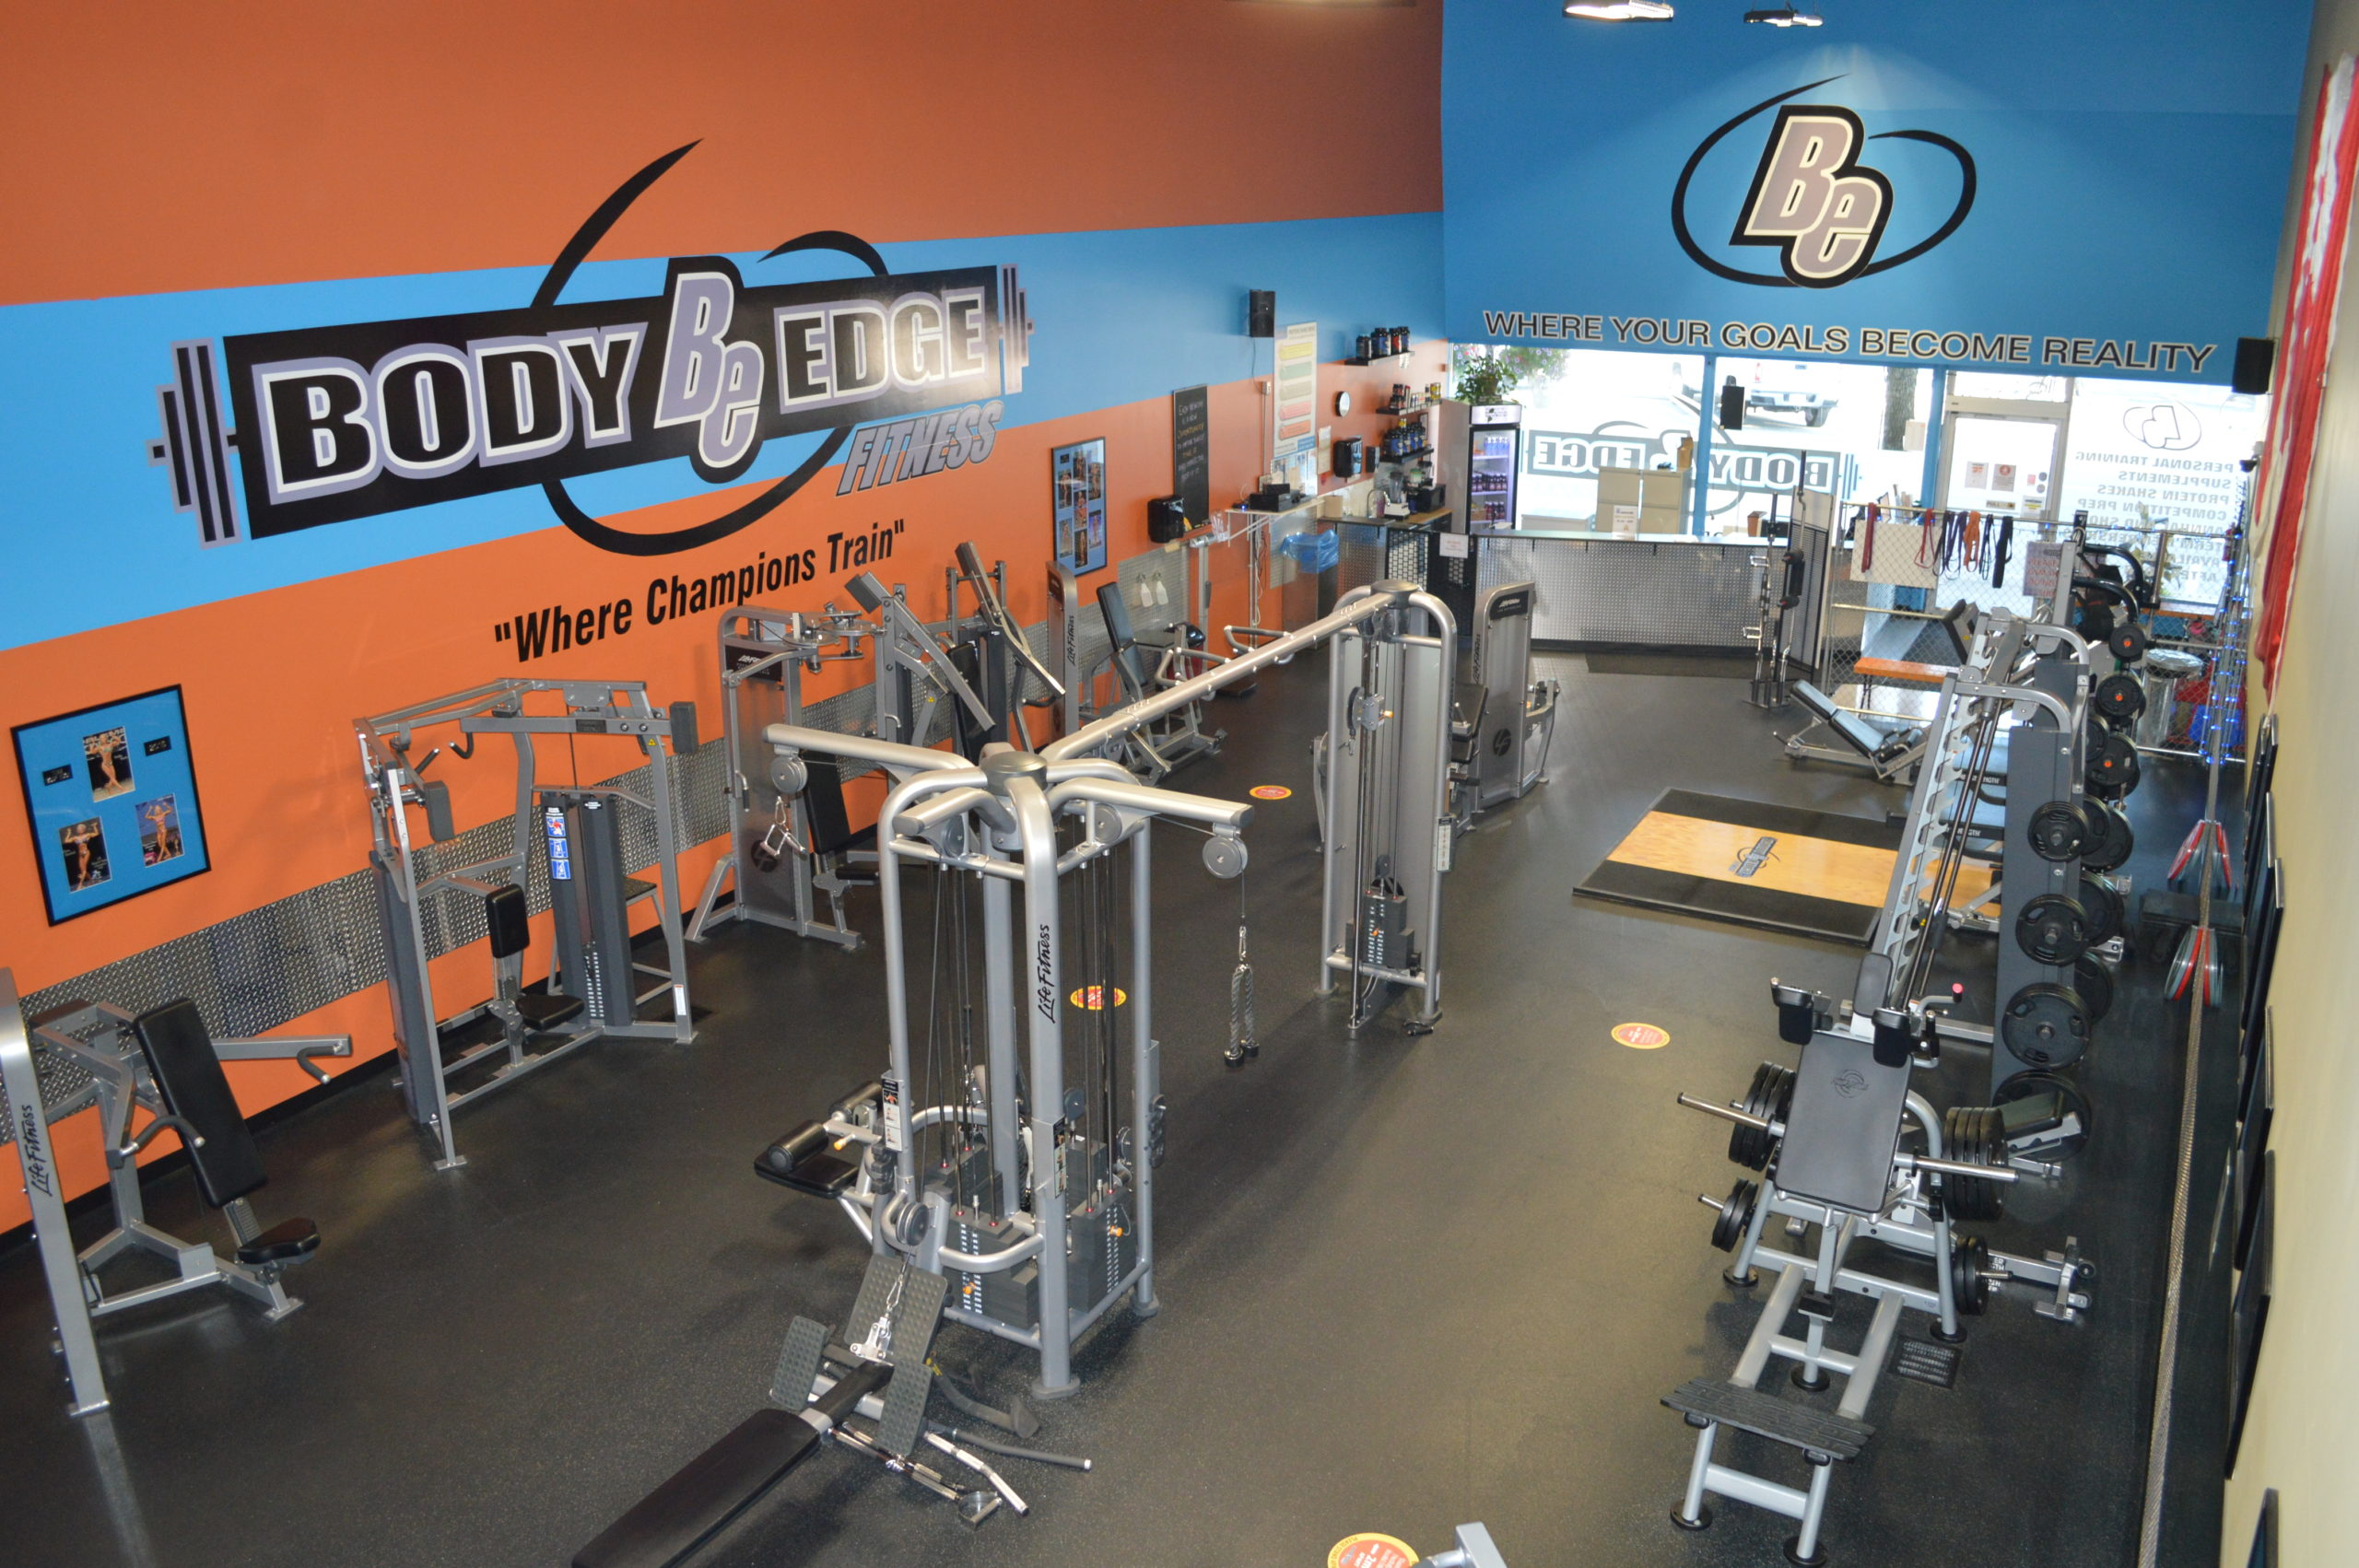 Gym for sale in Grand Forks is a business for sale in BC.